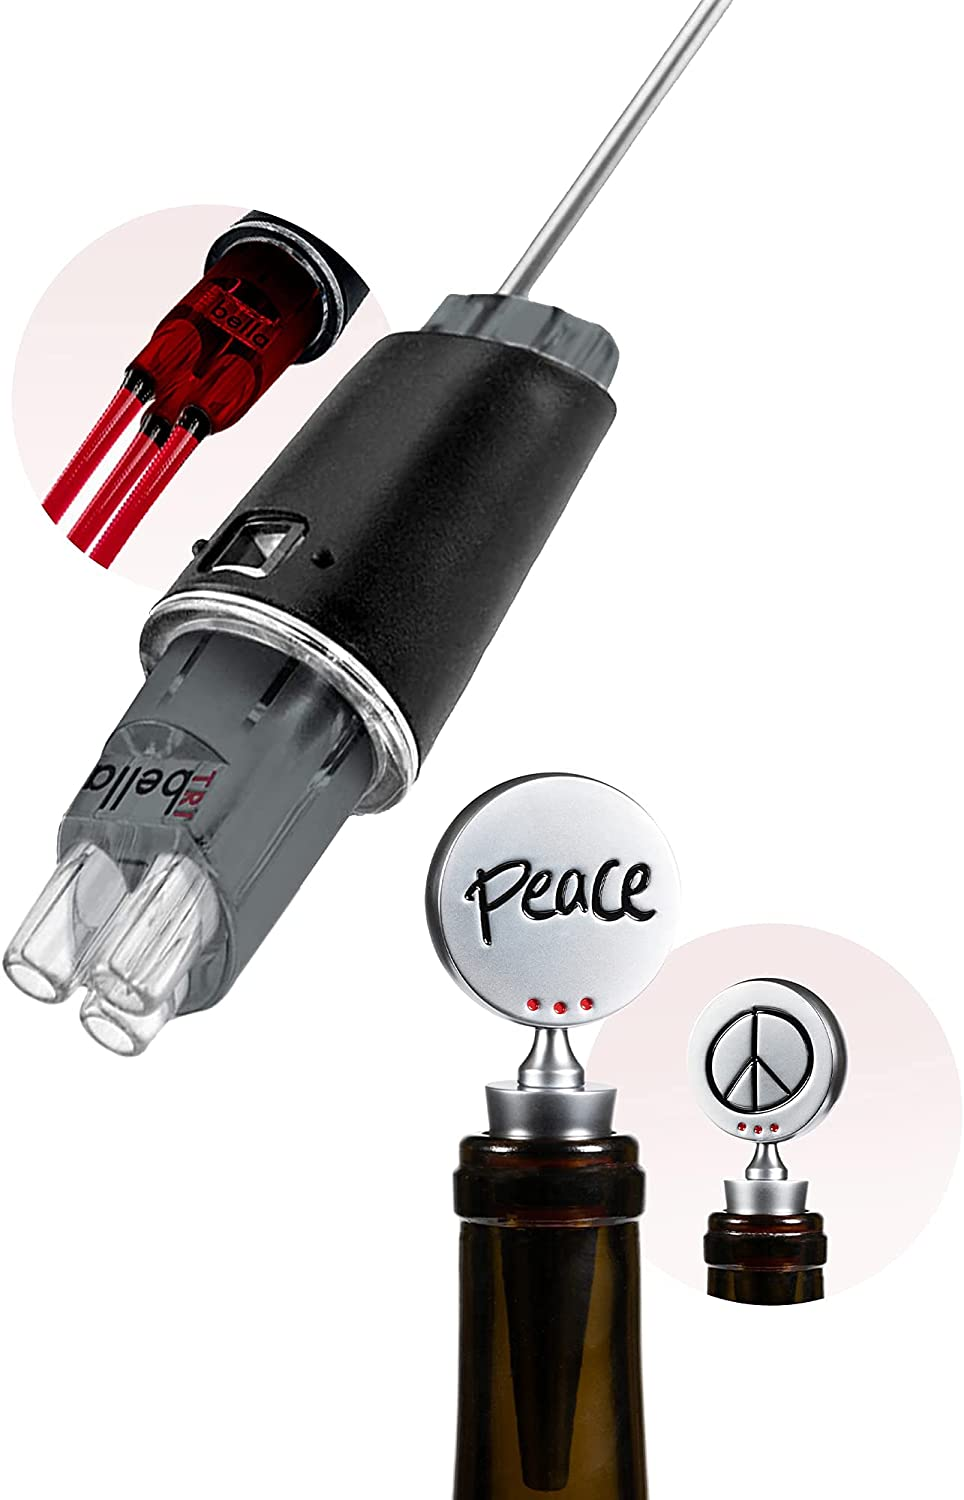 TRIBELLA - Air King Wine and Aerator Peace Max 85% OFF Topper 25% OFF Single-Inject